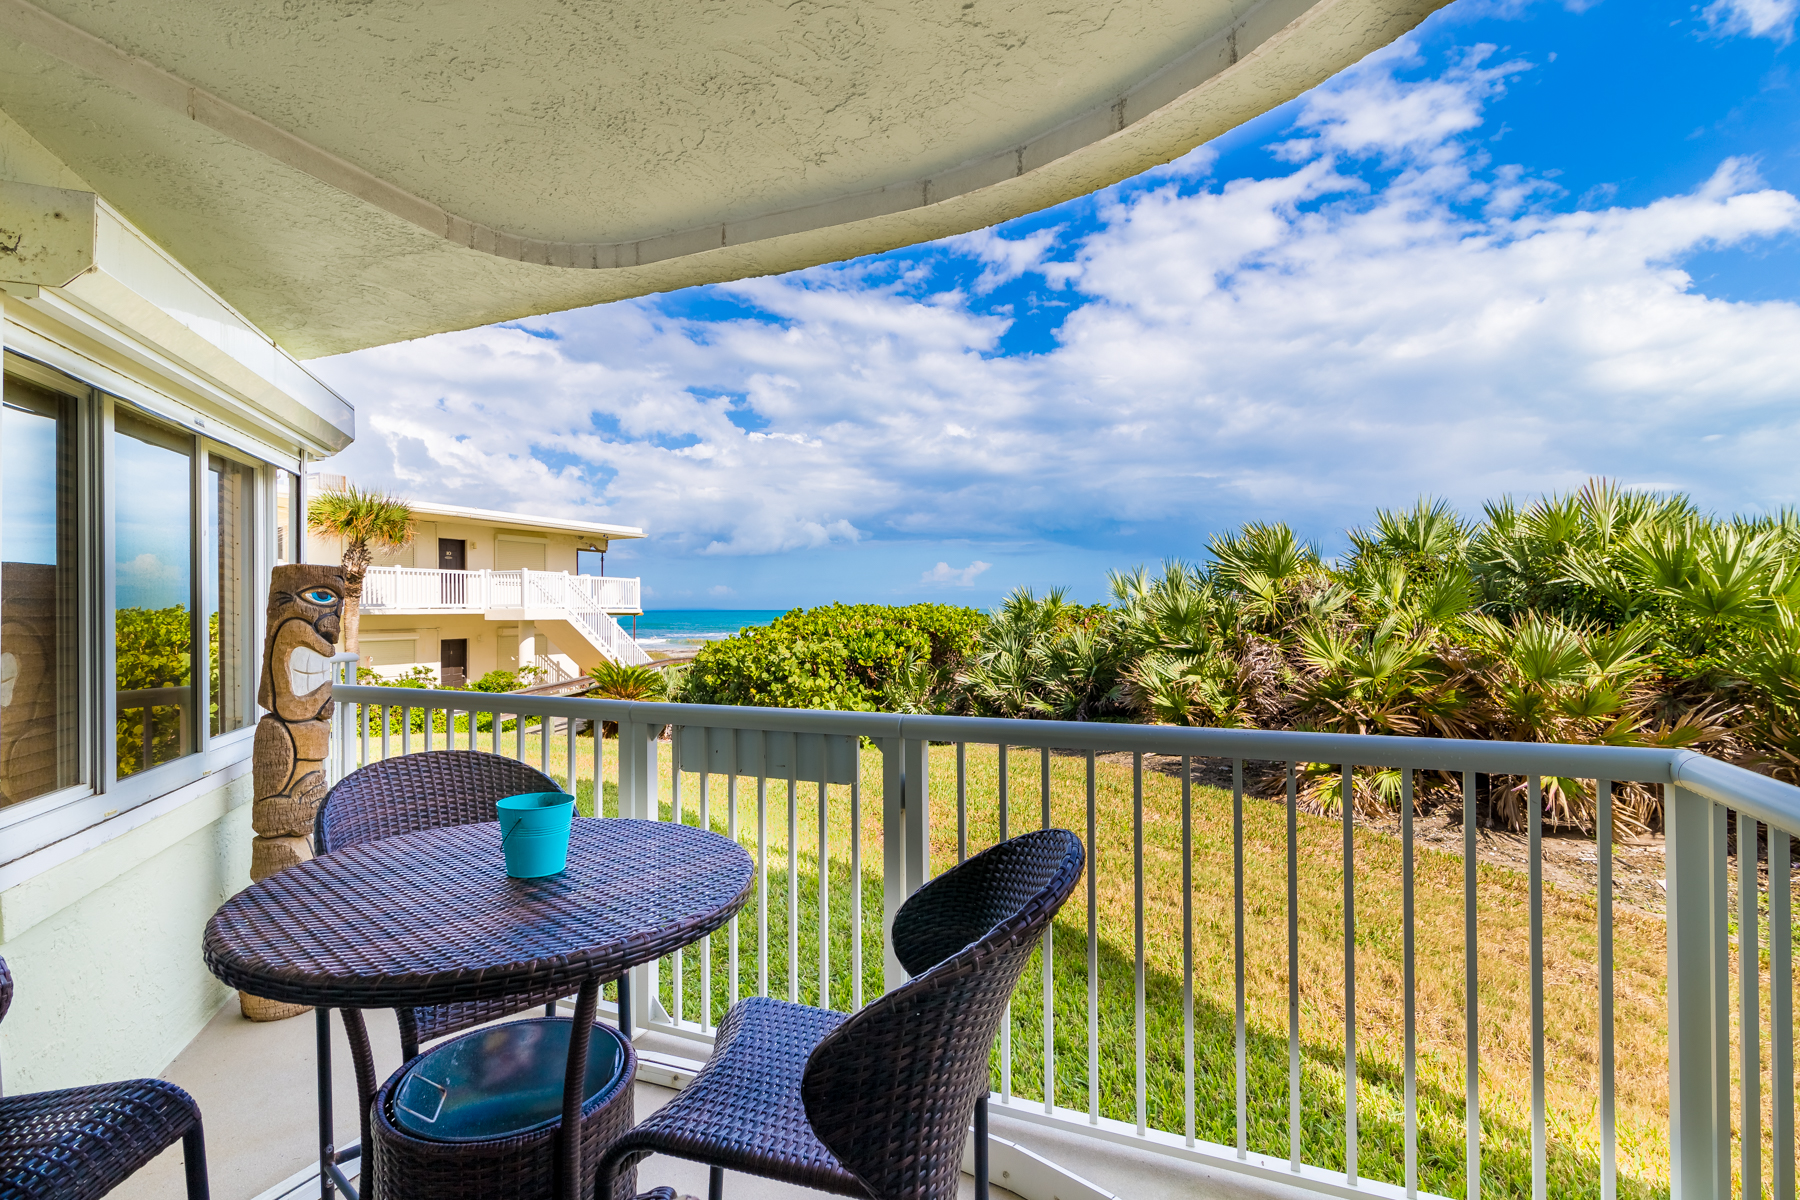 Additional photo for property listing at Casa Playa 3031 South Atlantic Avenue #102 Cocoa Beach, Florida 32931 United States